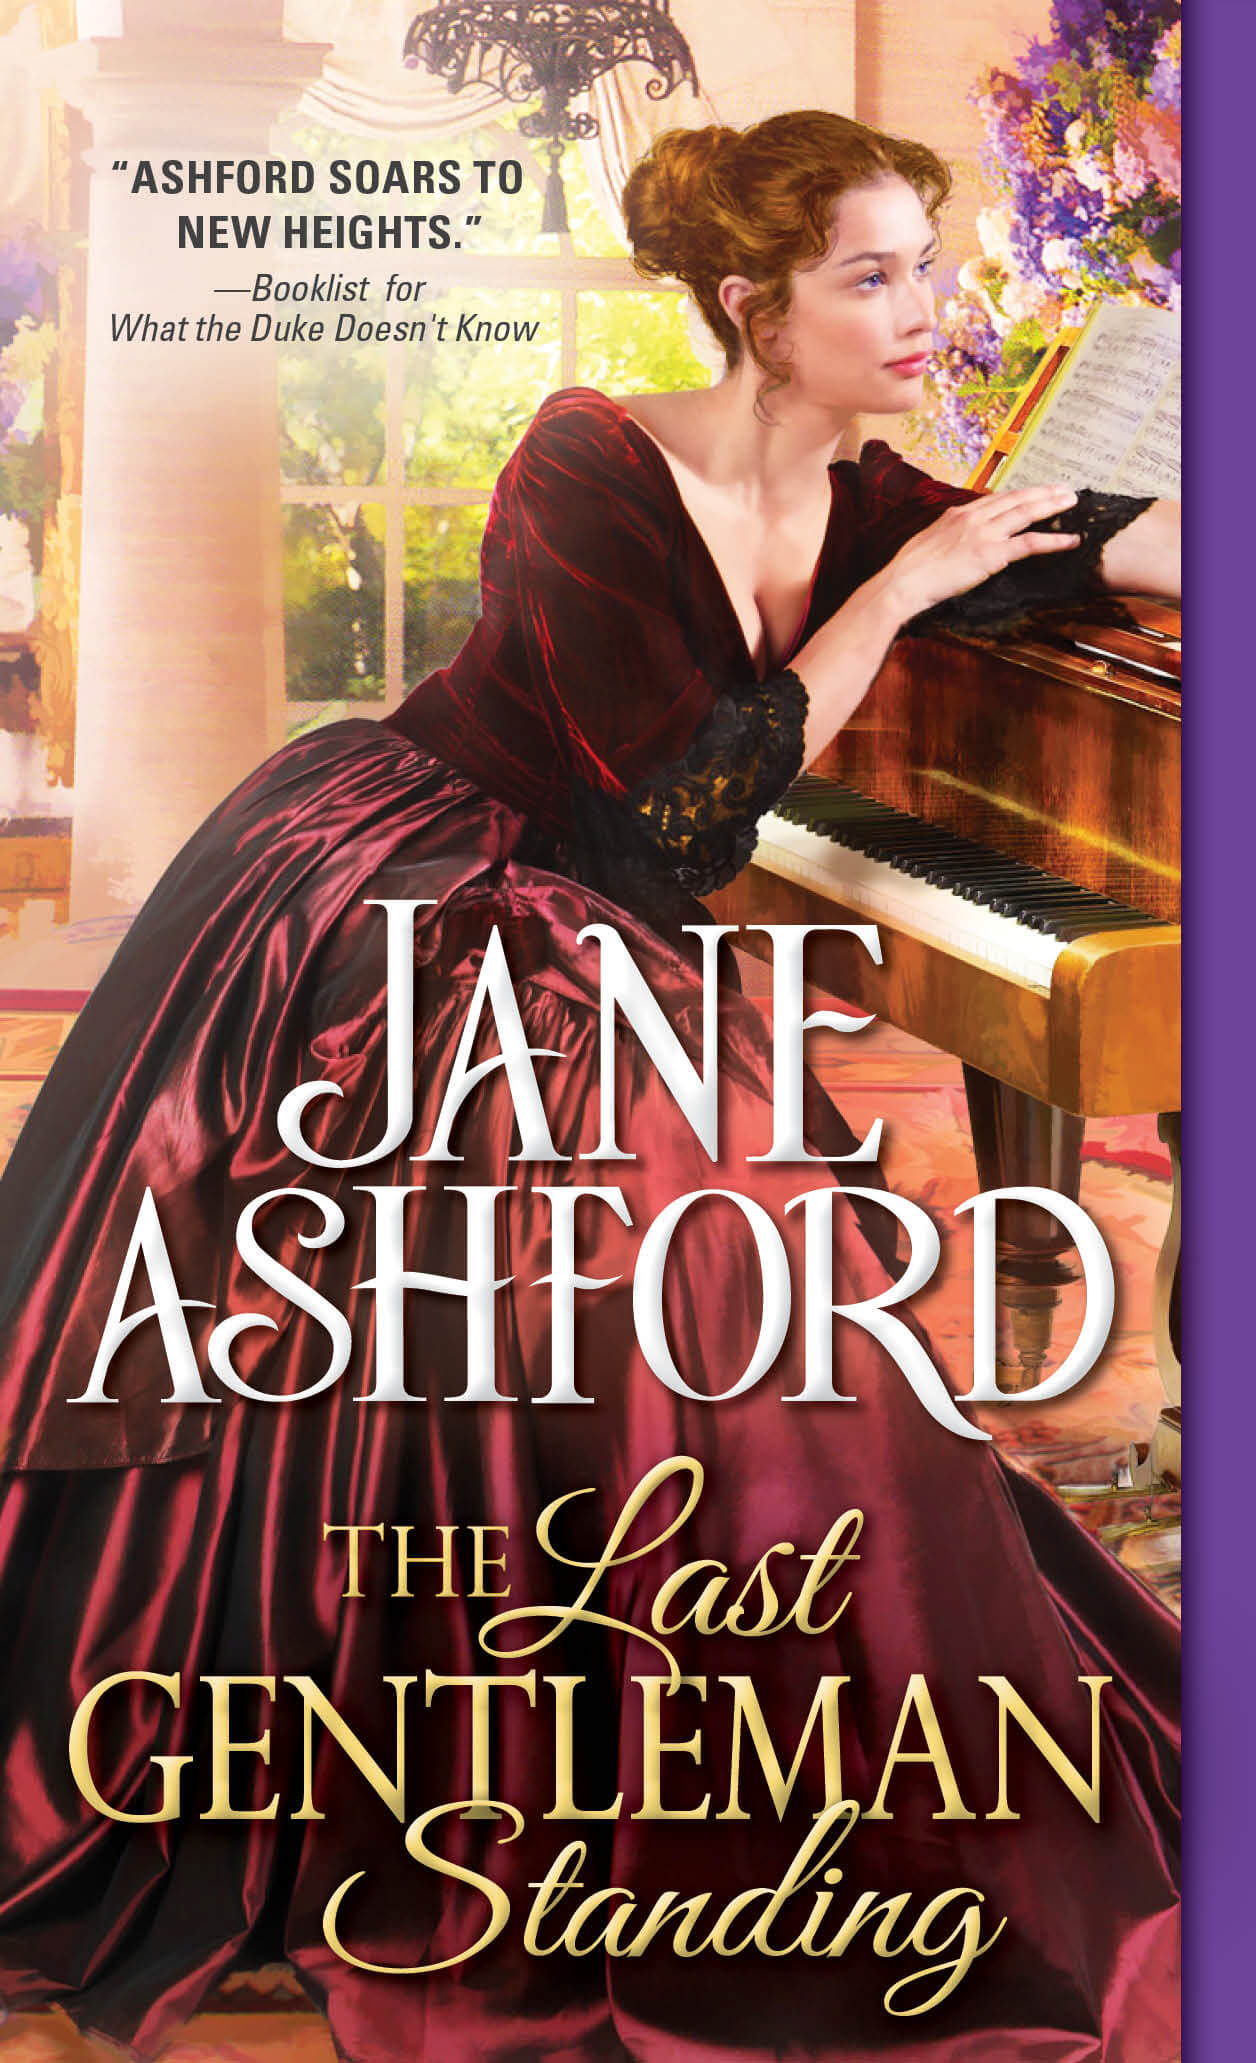 The Last Gentleman Standing (Bluestocking) by Jane Ashford